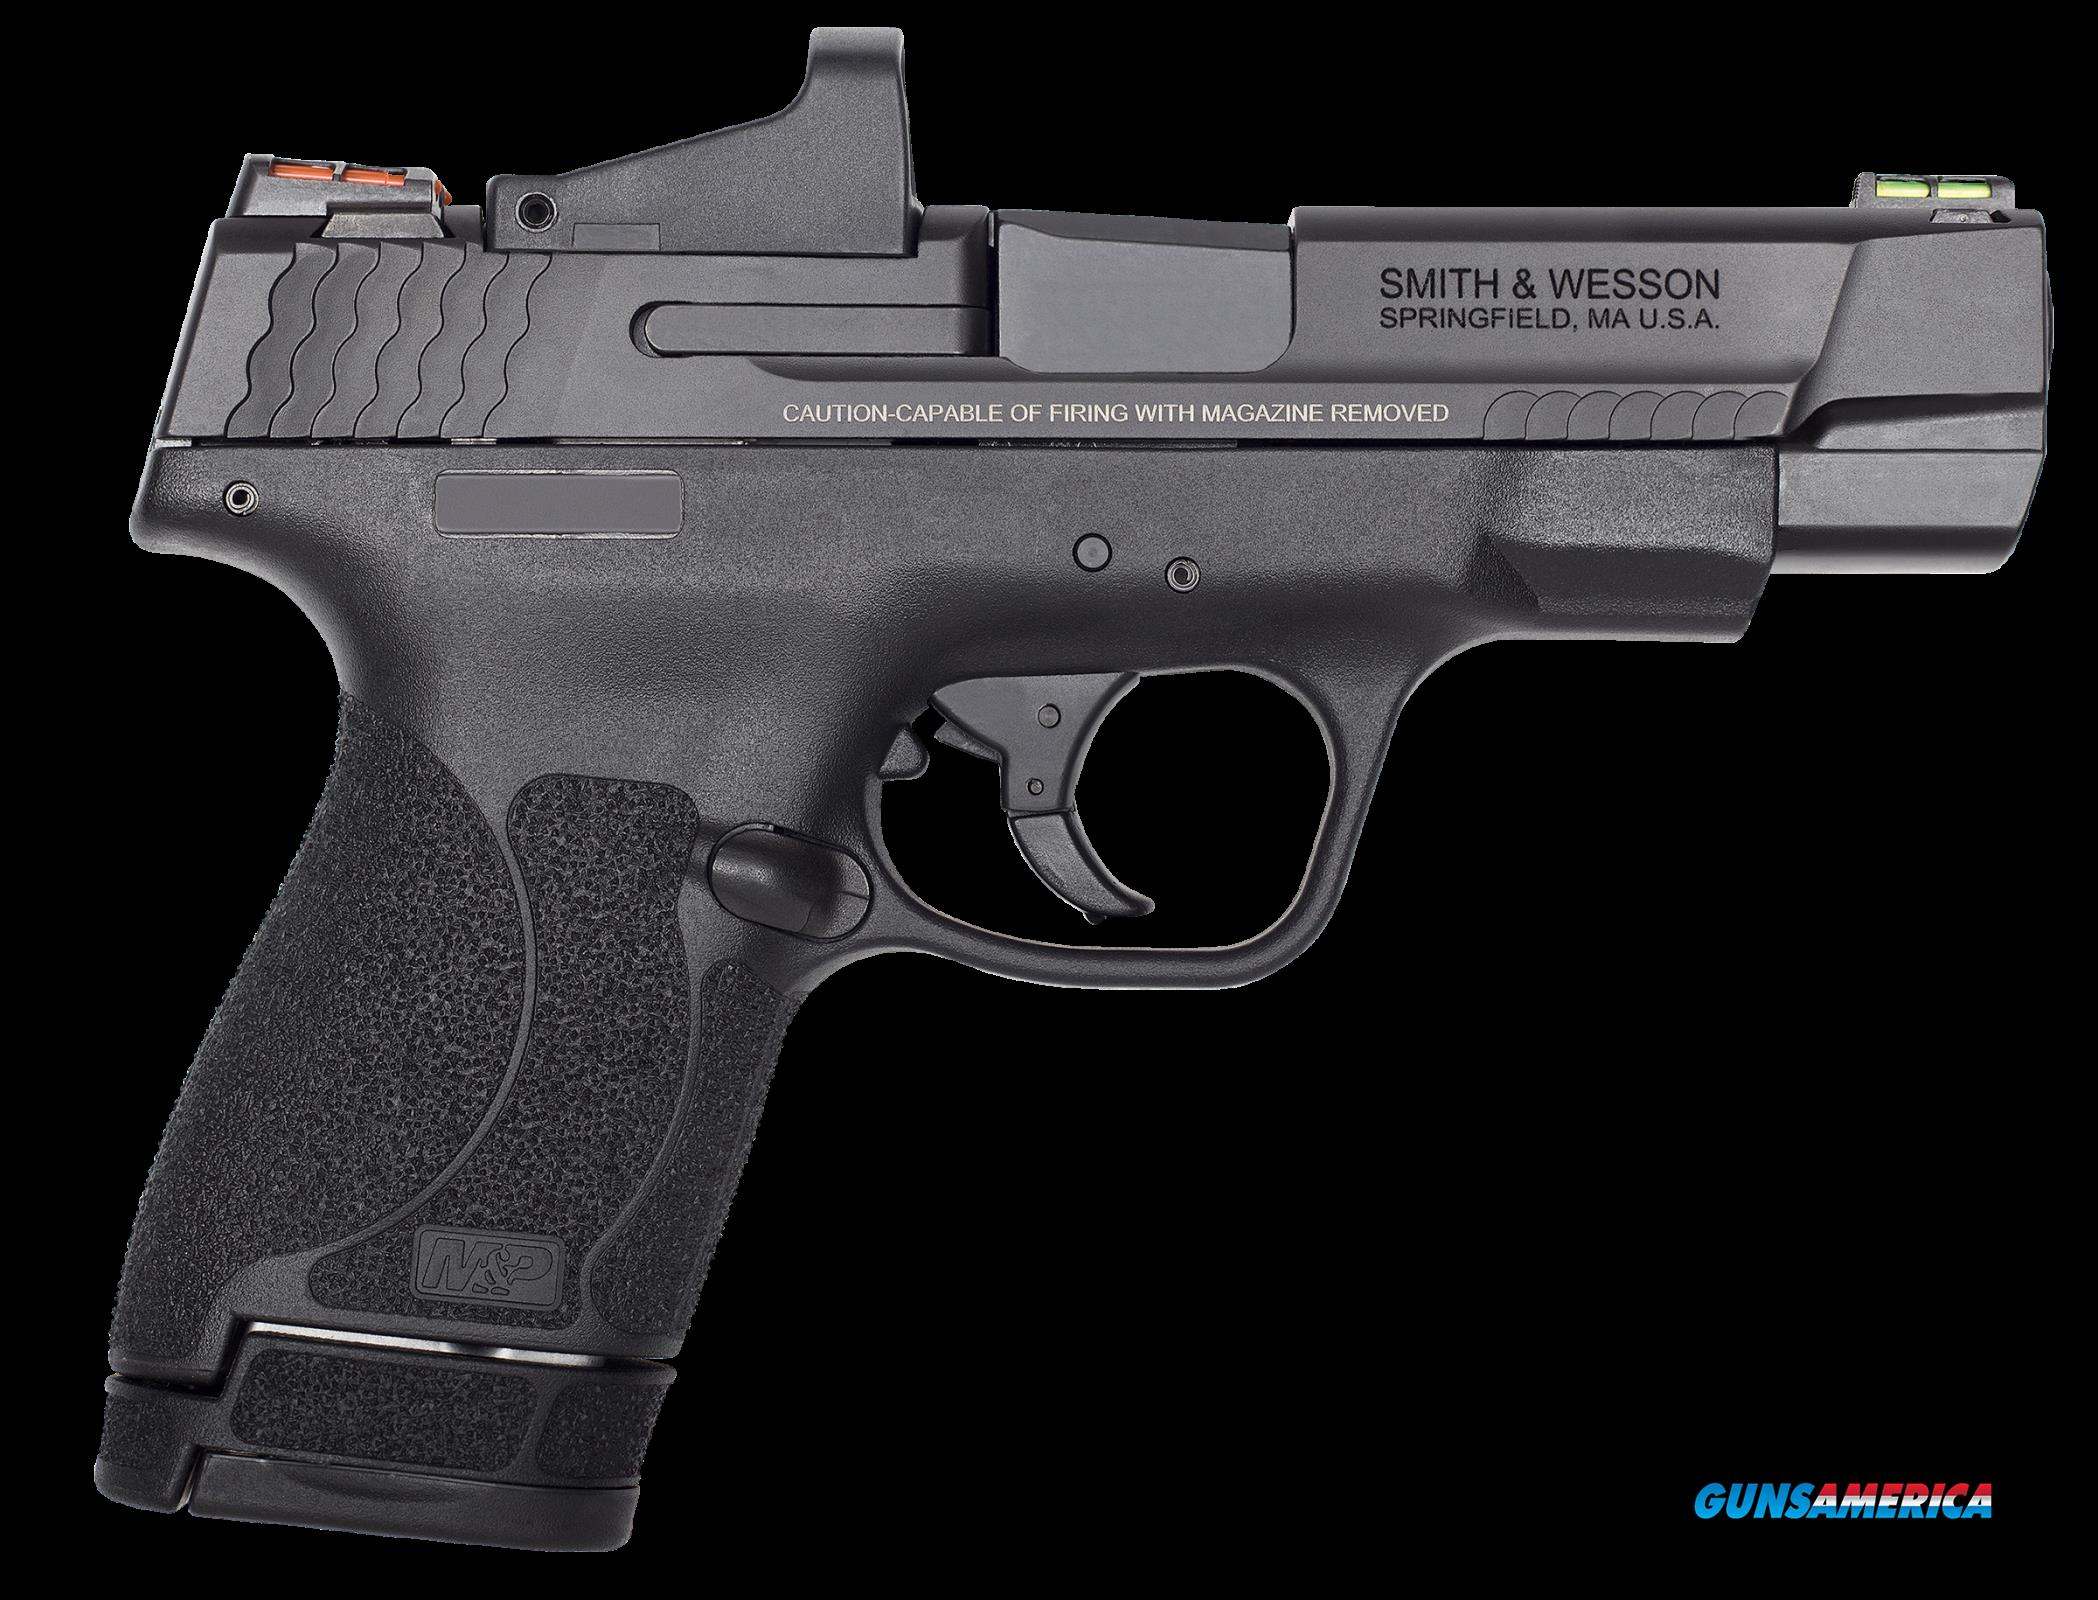 Smith & Wesson Performance Center, S&w M&p9shld   11786 Pfmc 9m 2.0 4in Opt Rdy  8-7r  Guns > Pistols > 1911 Pistol Copies (non-Colt)